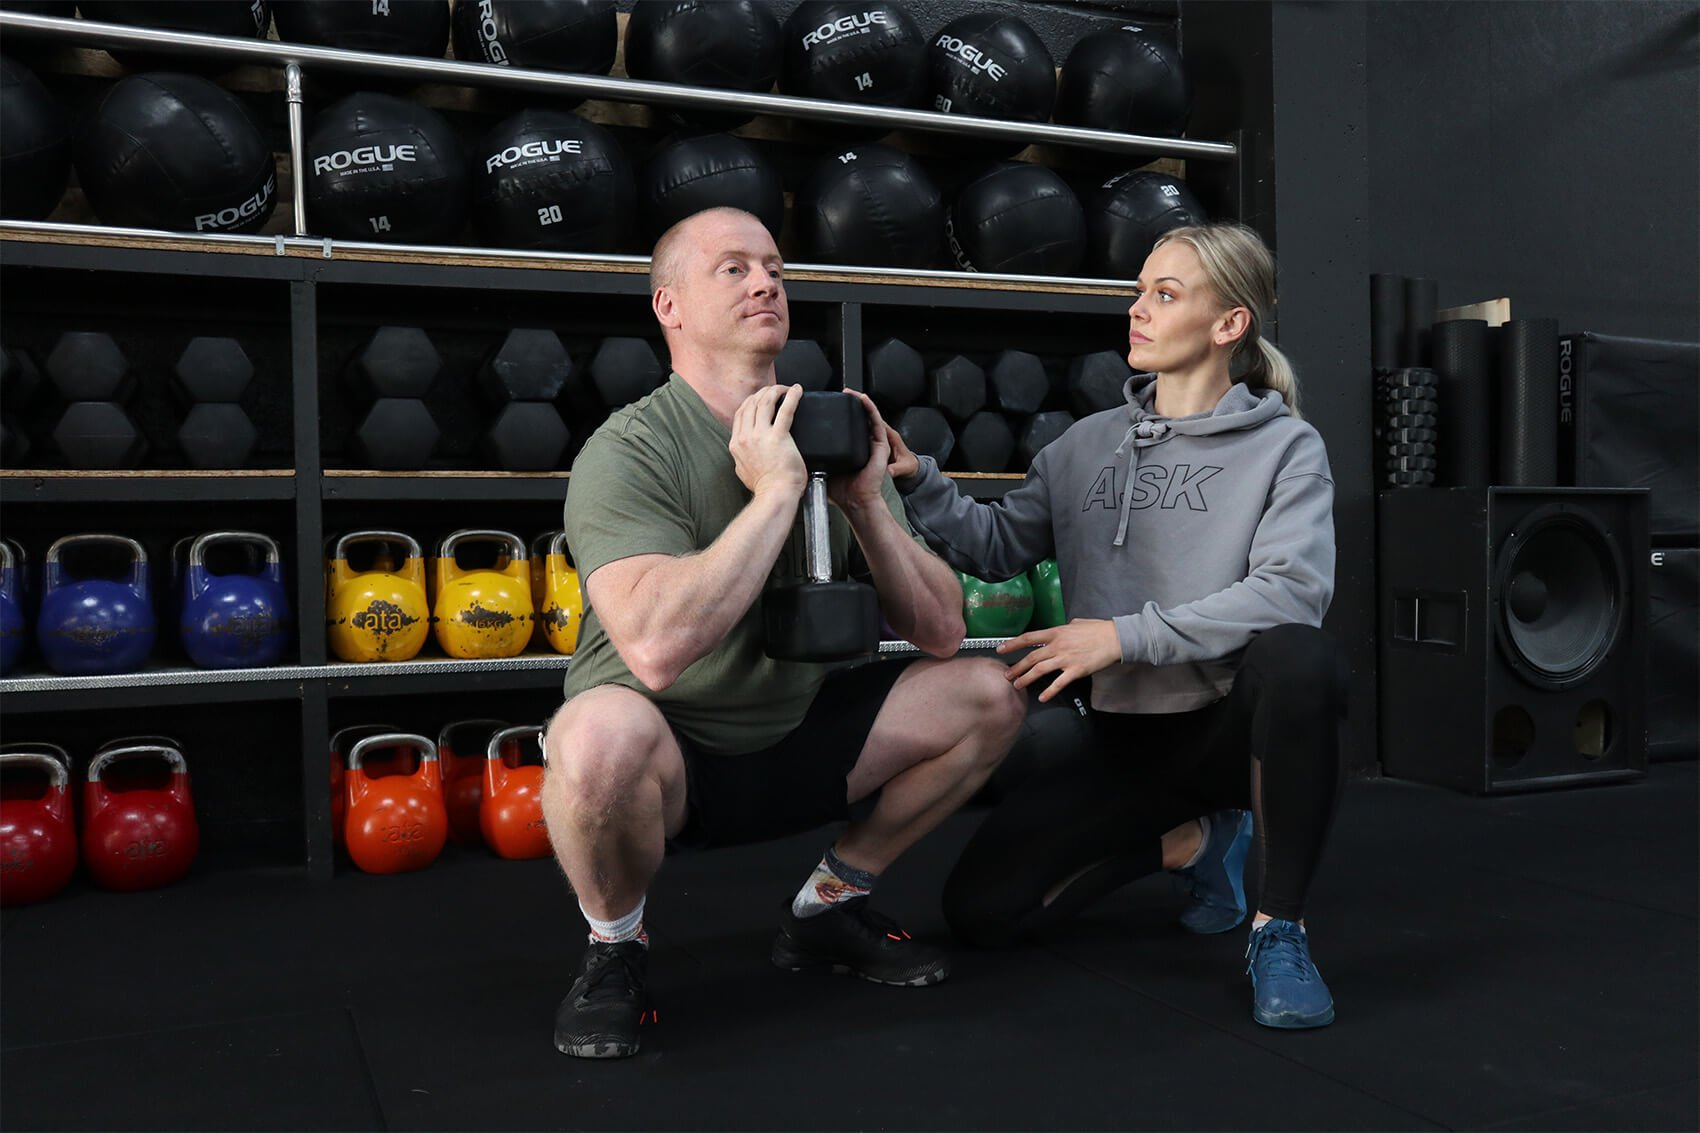 crossfit-ask-personal-training-stavanger-forus